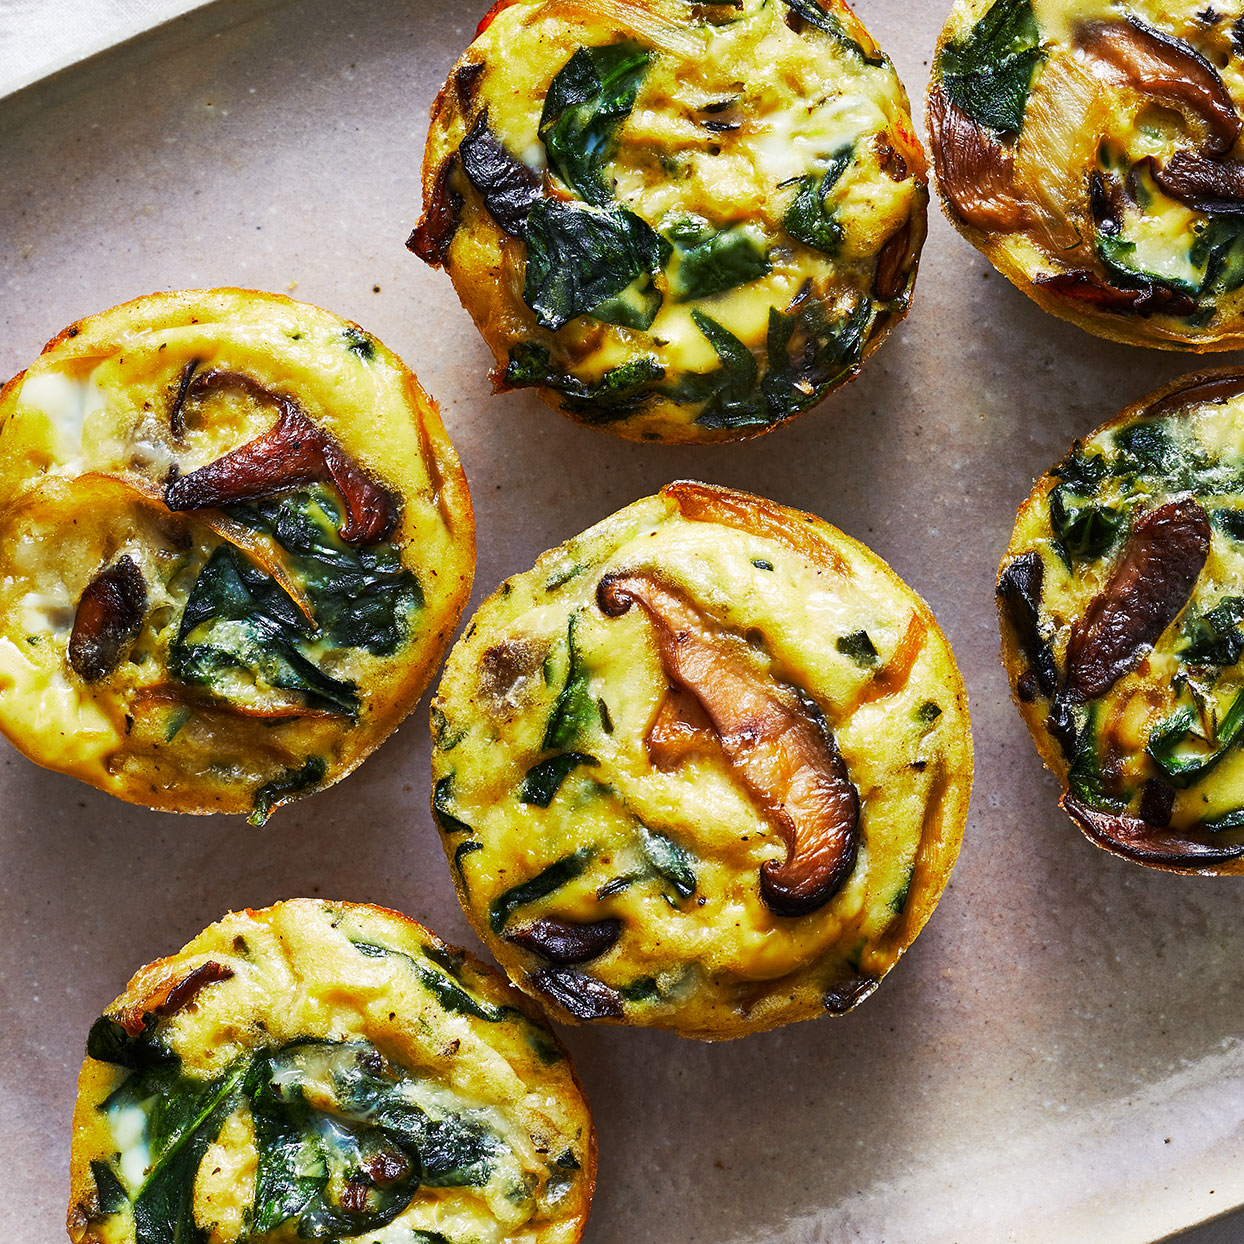 Switch up your morning routine with these easy vegetarian mini quiches. Earthy mushrooms and spinach pair nicely with rich and creamy Gruyère cheese. Serve them on a platter with a fresh fruit salad for a simple weekend brunch. Source: EatingWell.com, March 2020